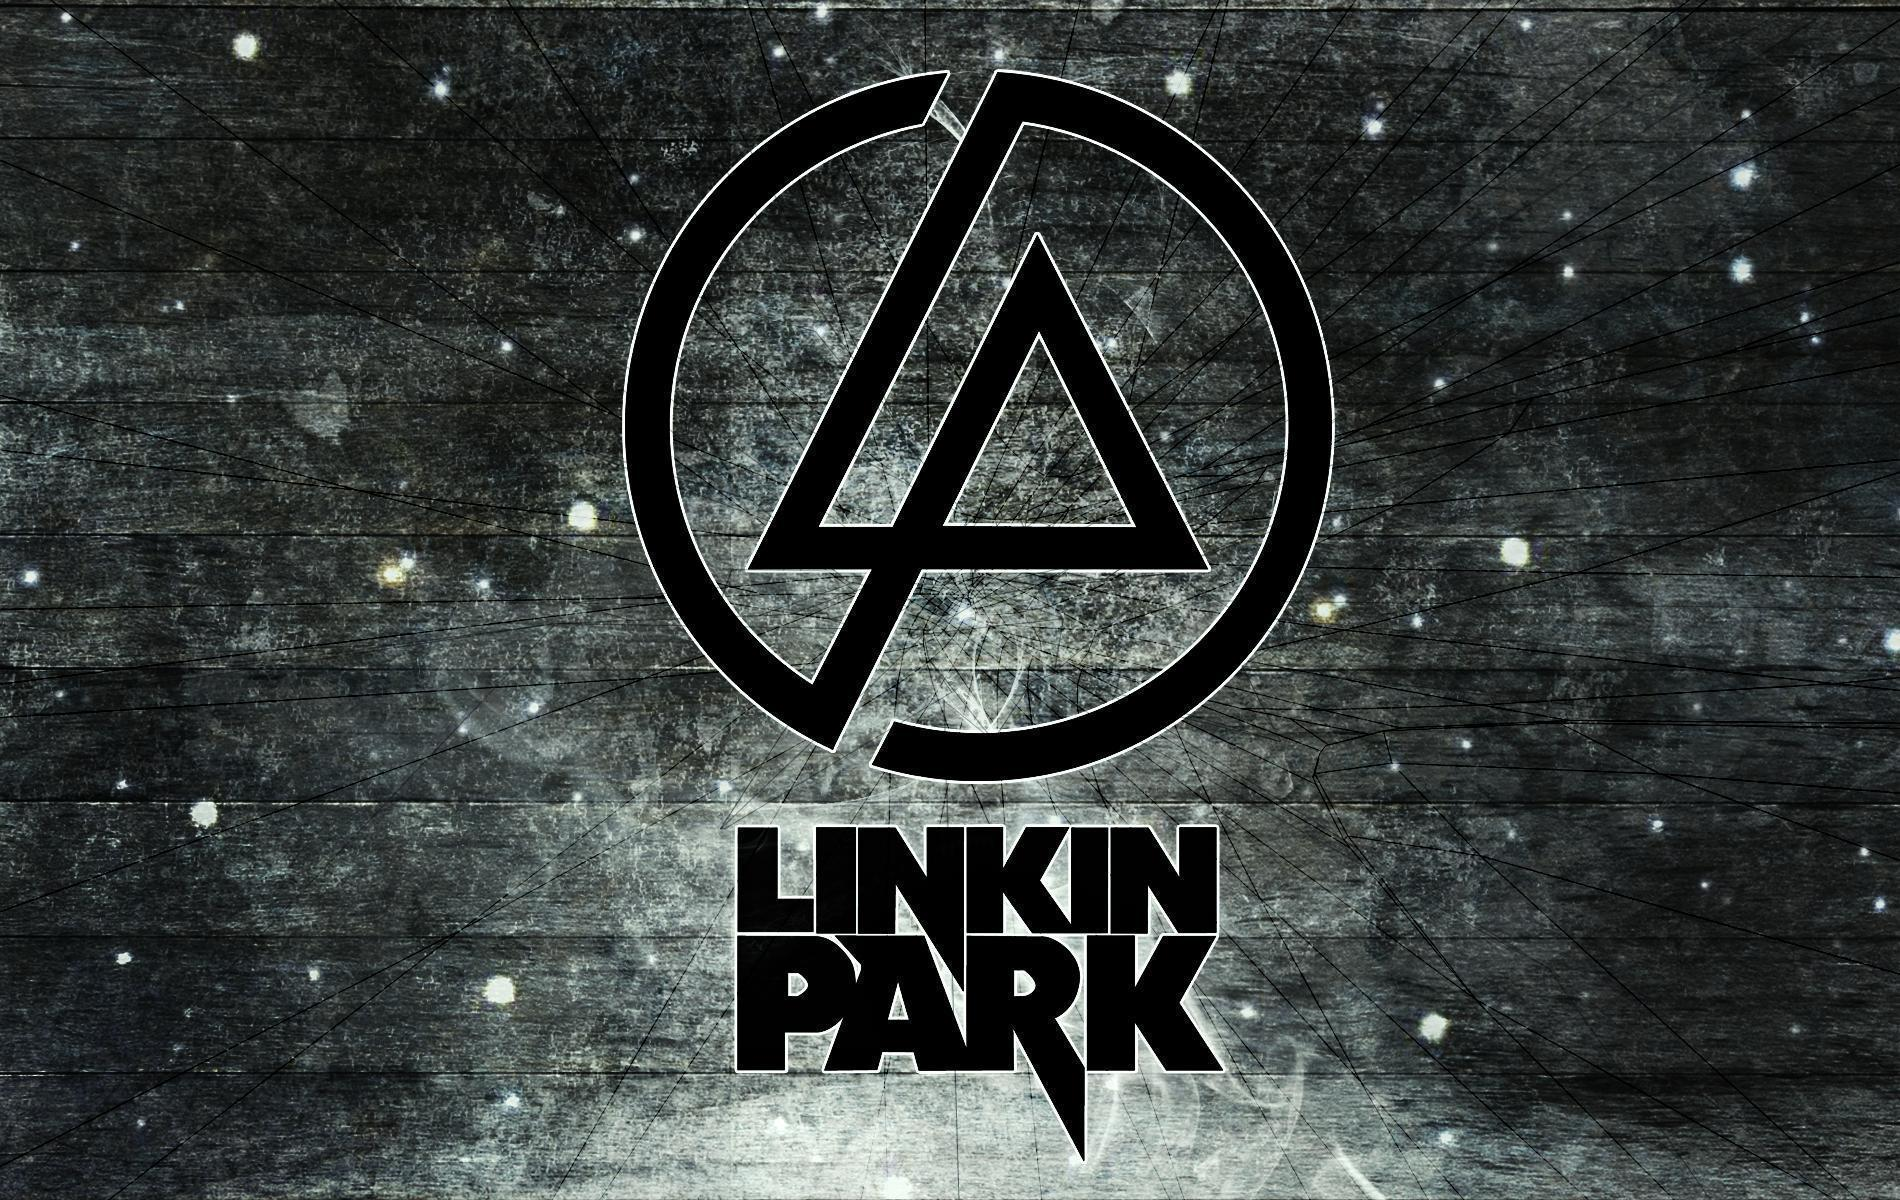 Linkin Park Logo Wallpapers Hd Wallpaper Cave